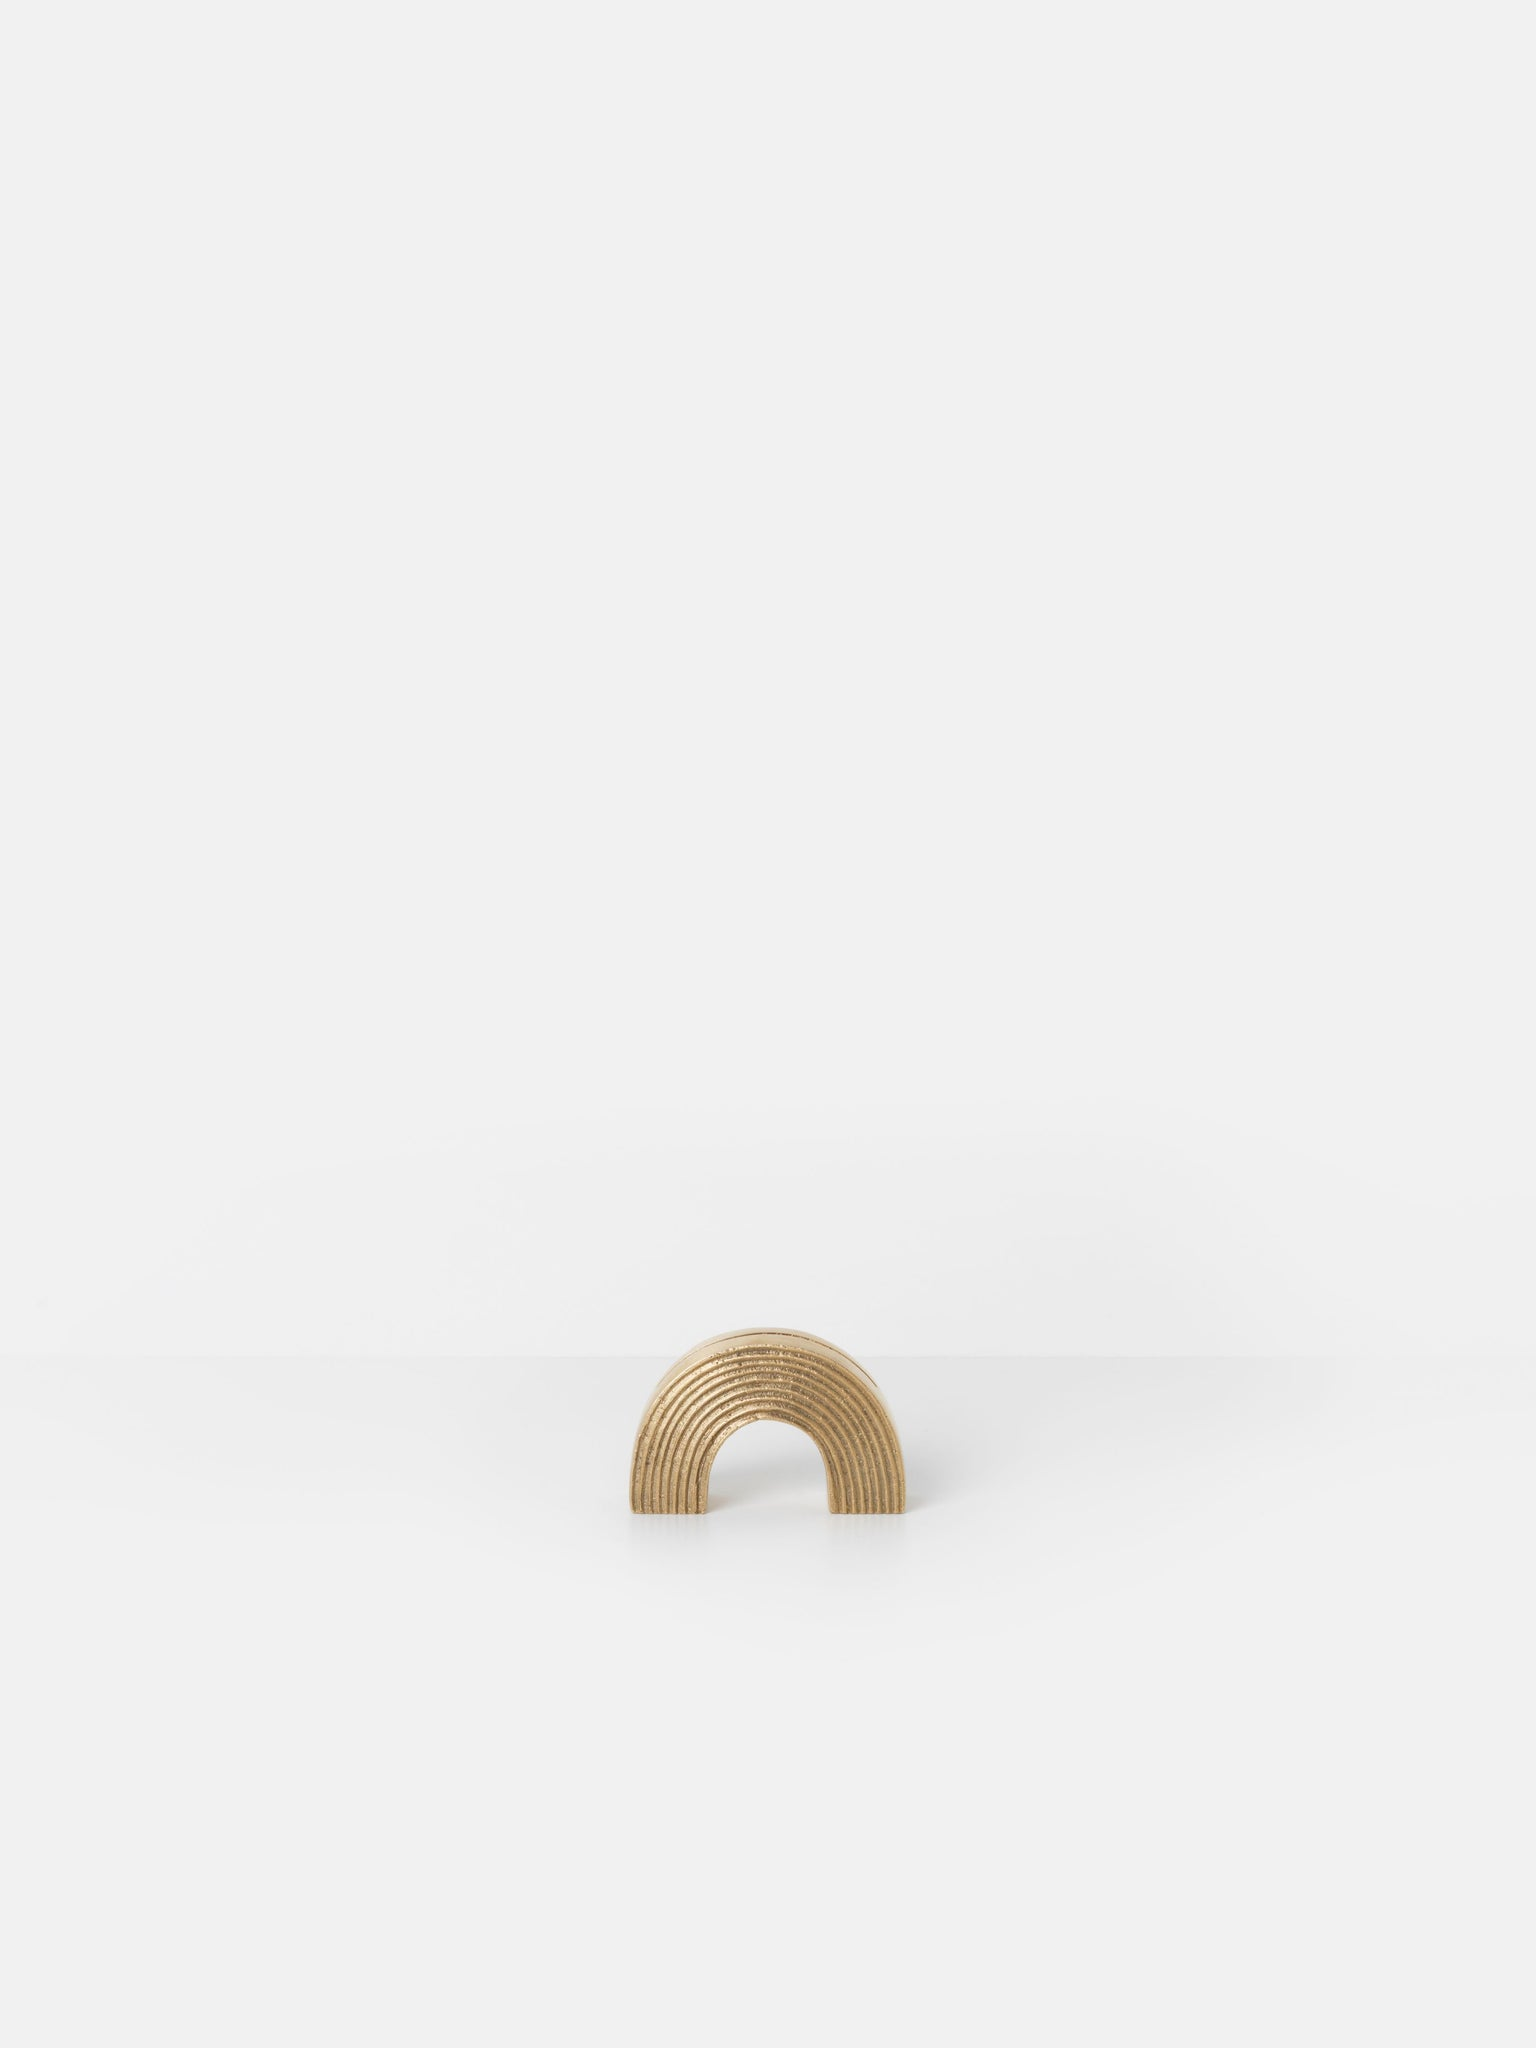 Card Stand Arch, Accessory Stationery, Ferm Living, Places and Spaces